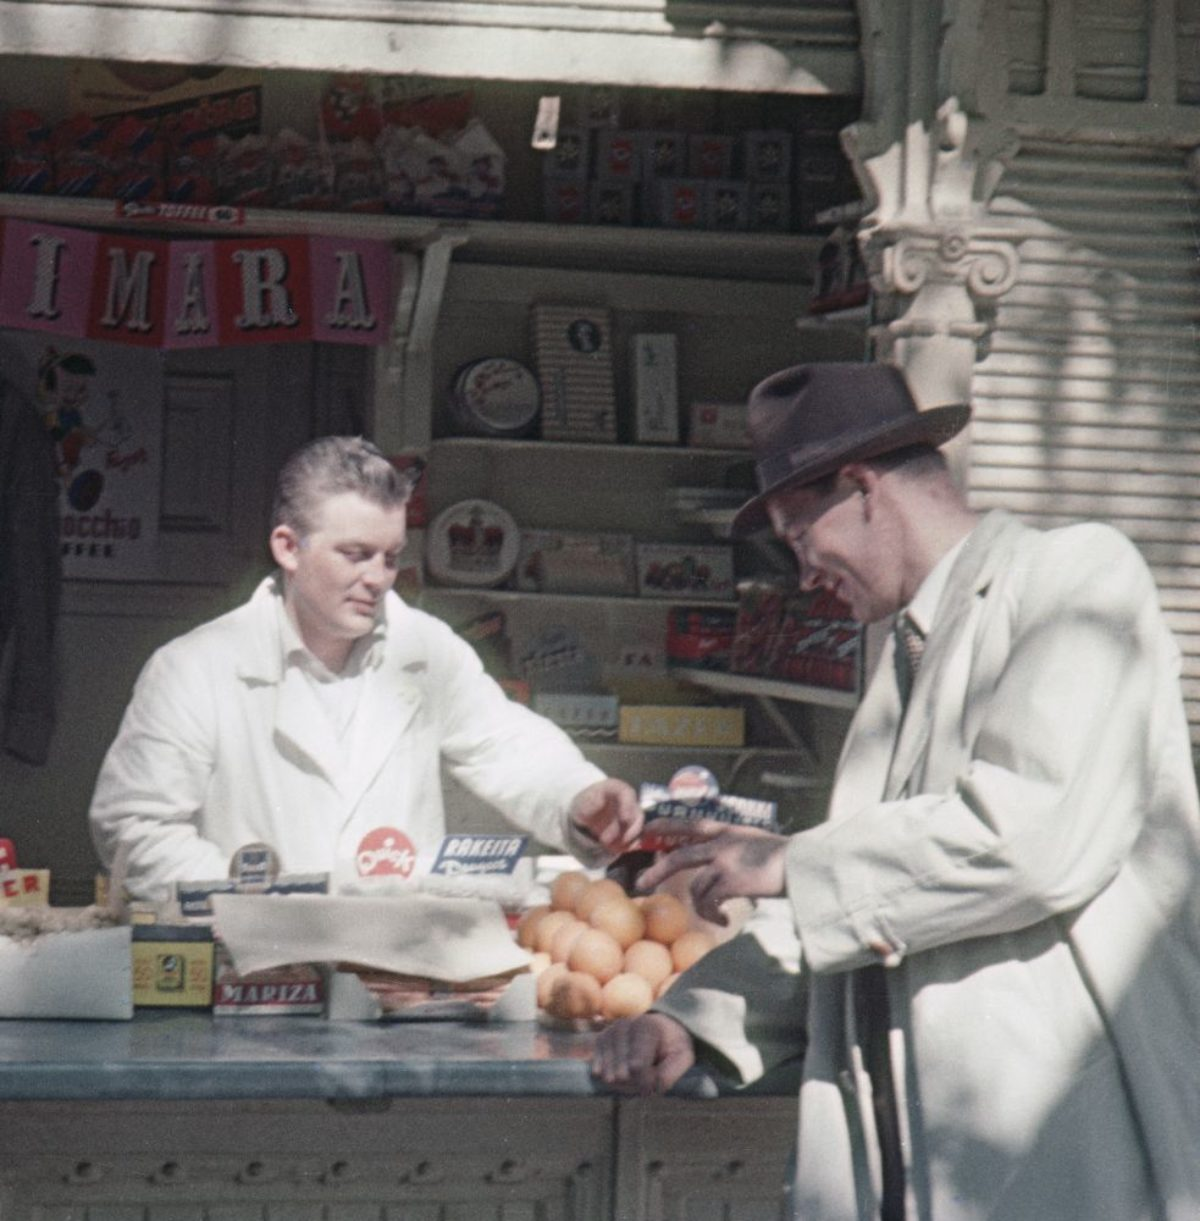 A kiosk vendor in Helsinki's Esplanadi Park in 1954. Photo: Aukusti Tuhka / Picture Collections of the Finnish Heritage Agency